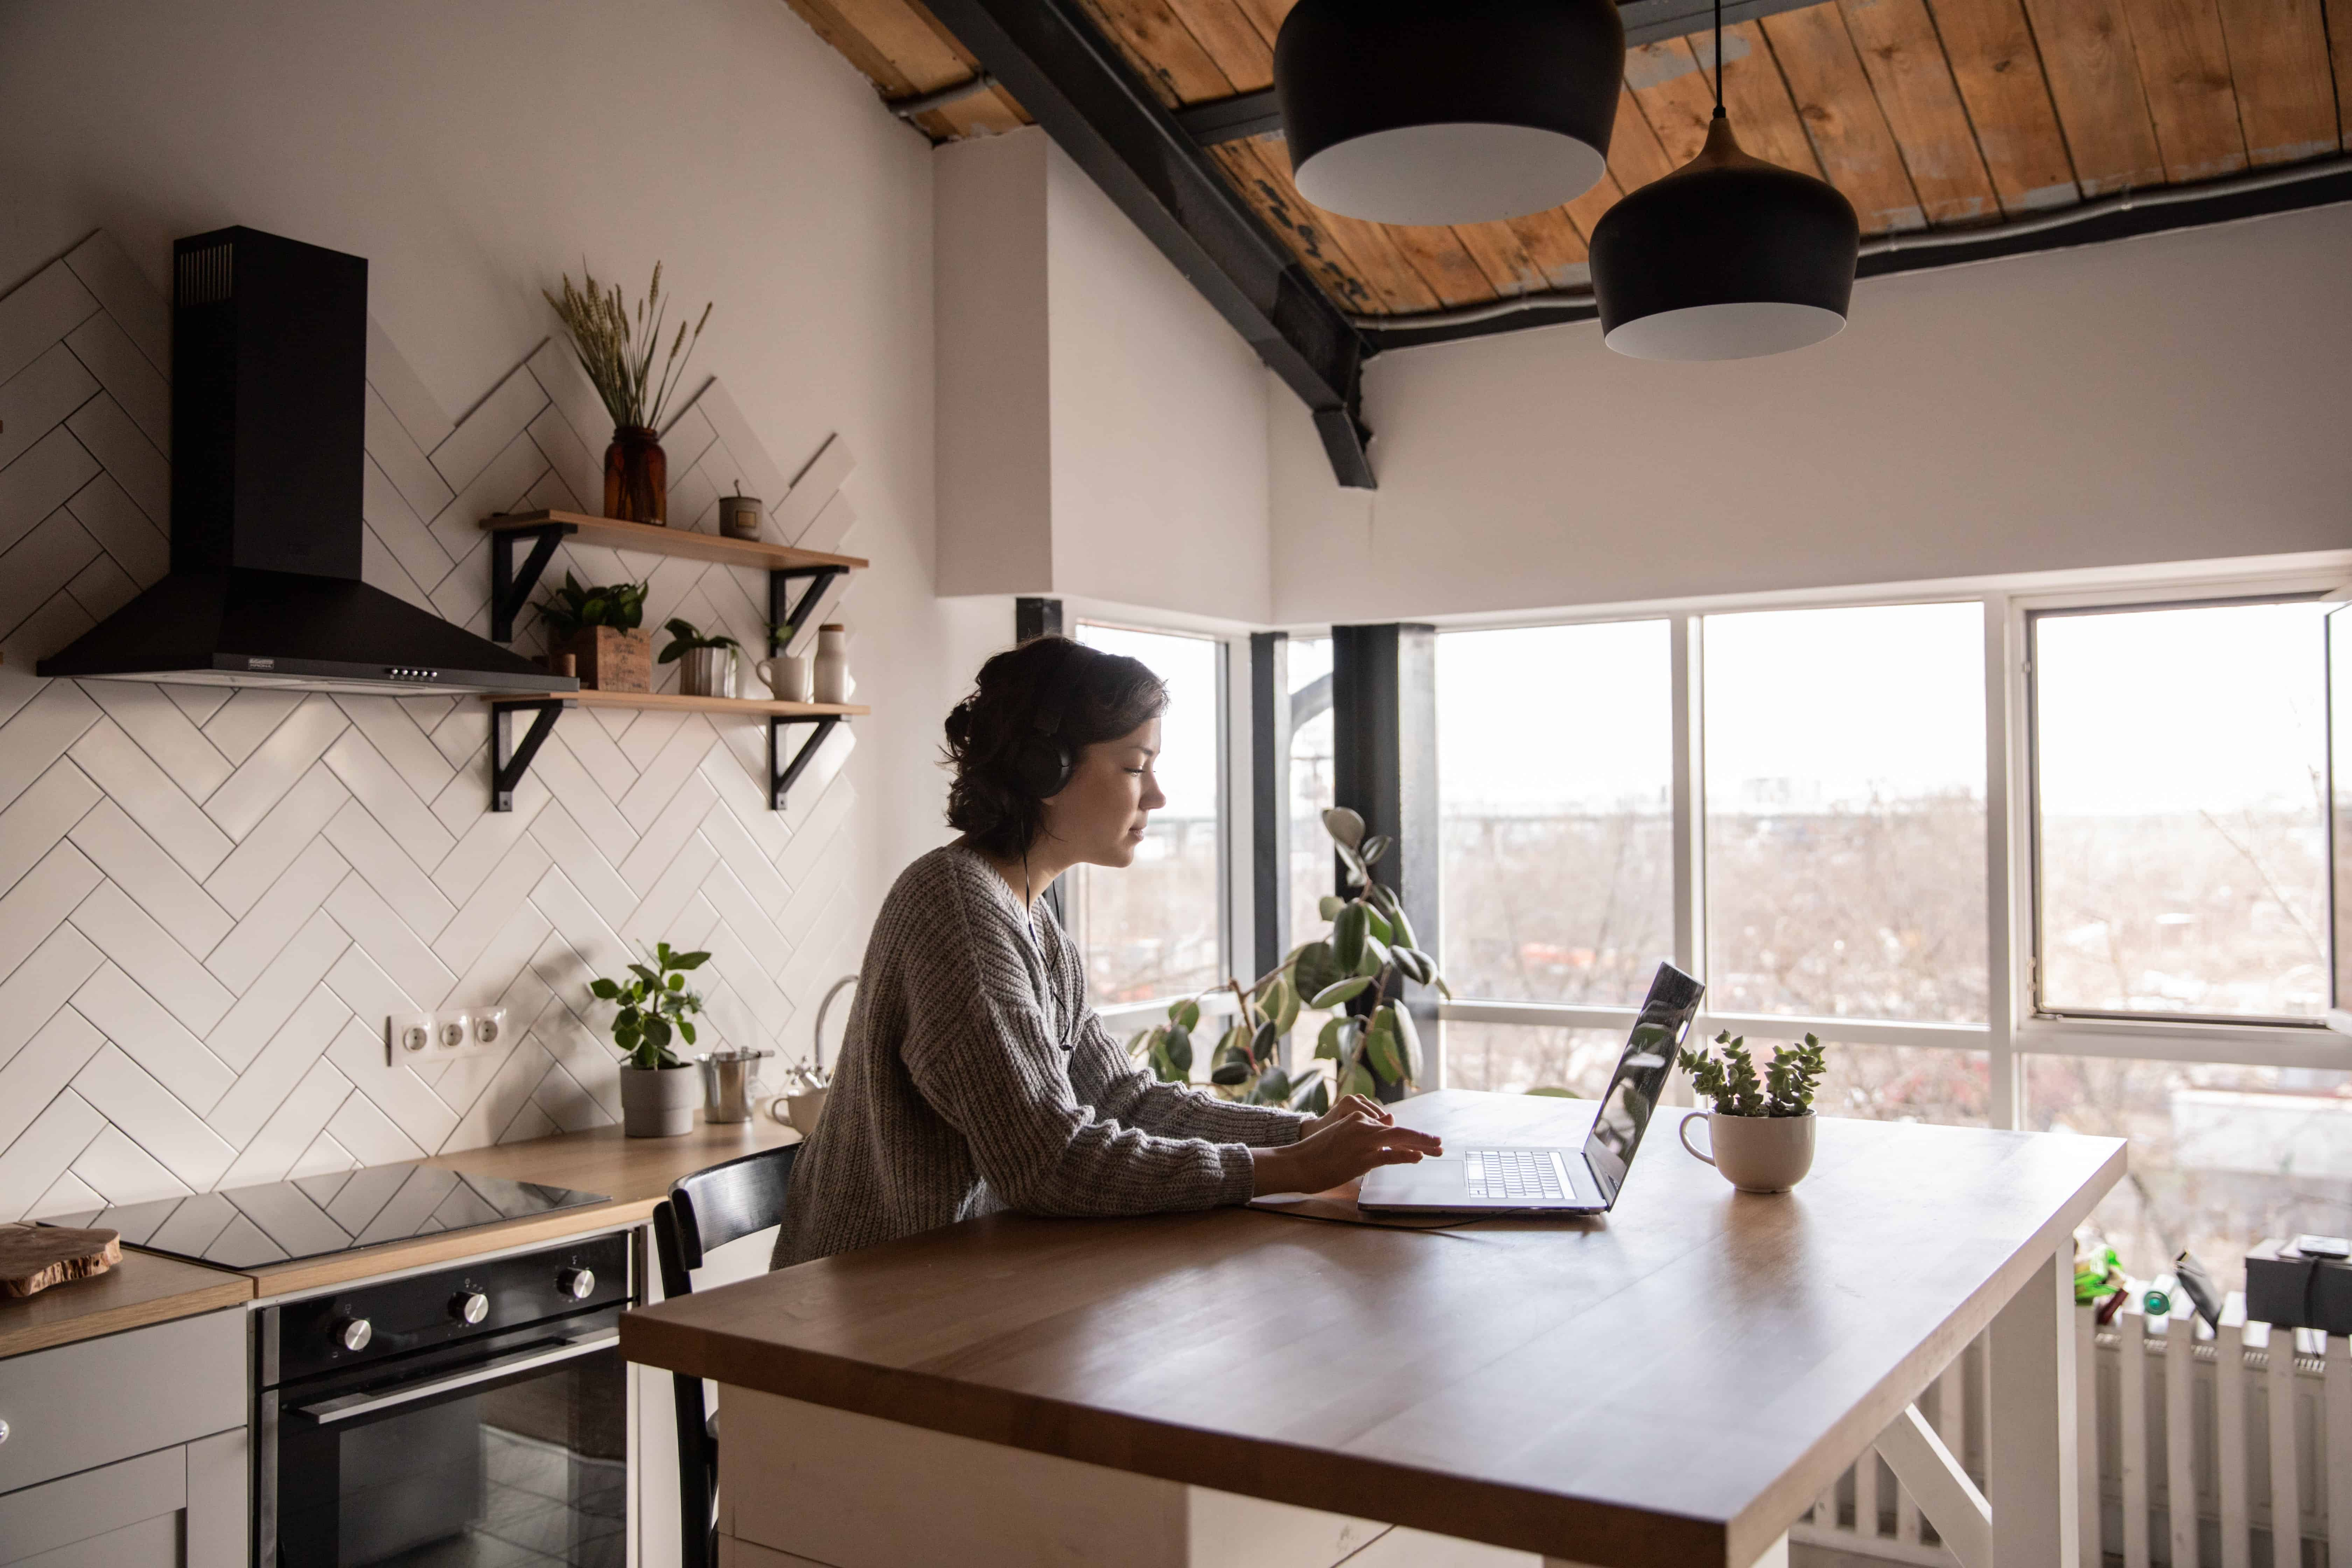 A woman working on her laptop in a kitchen.